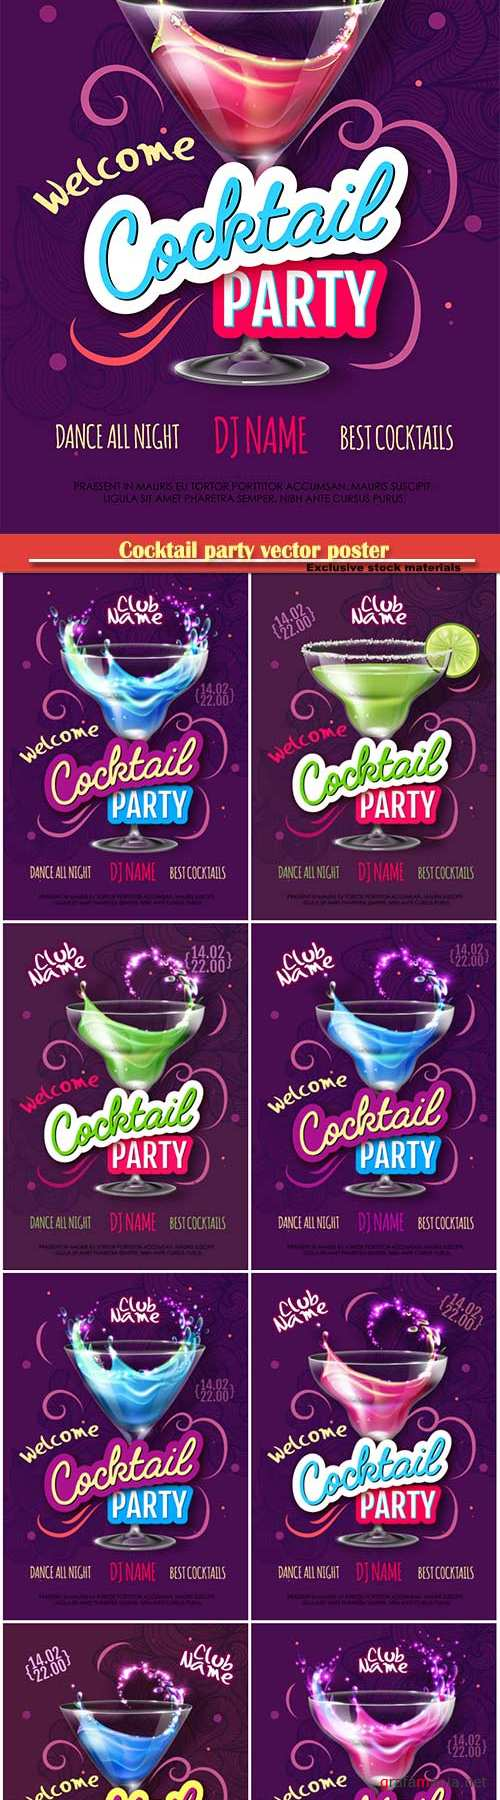 Cocktail party vector poster in eclectic modern style, Valentine's Day